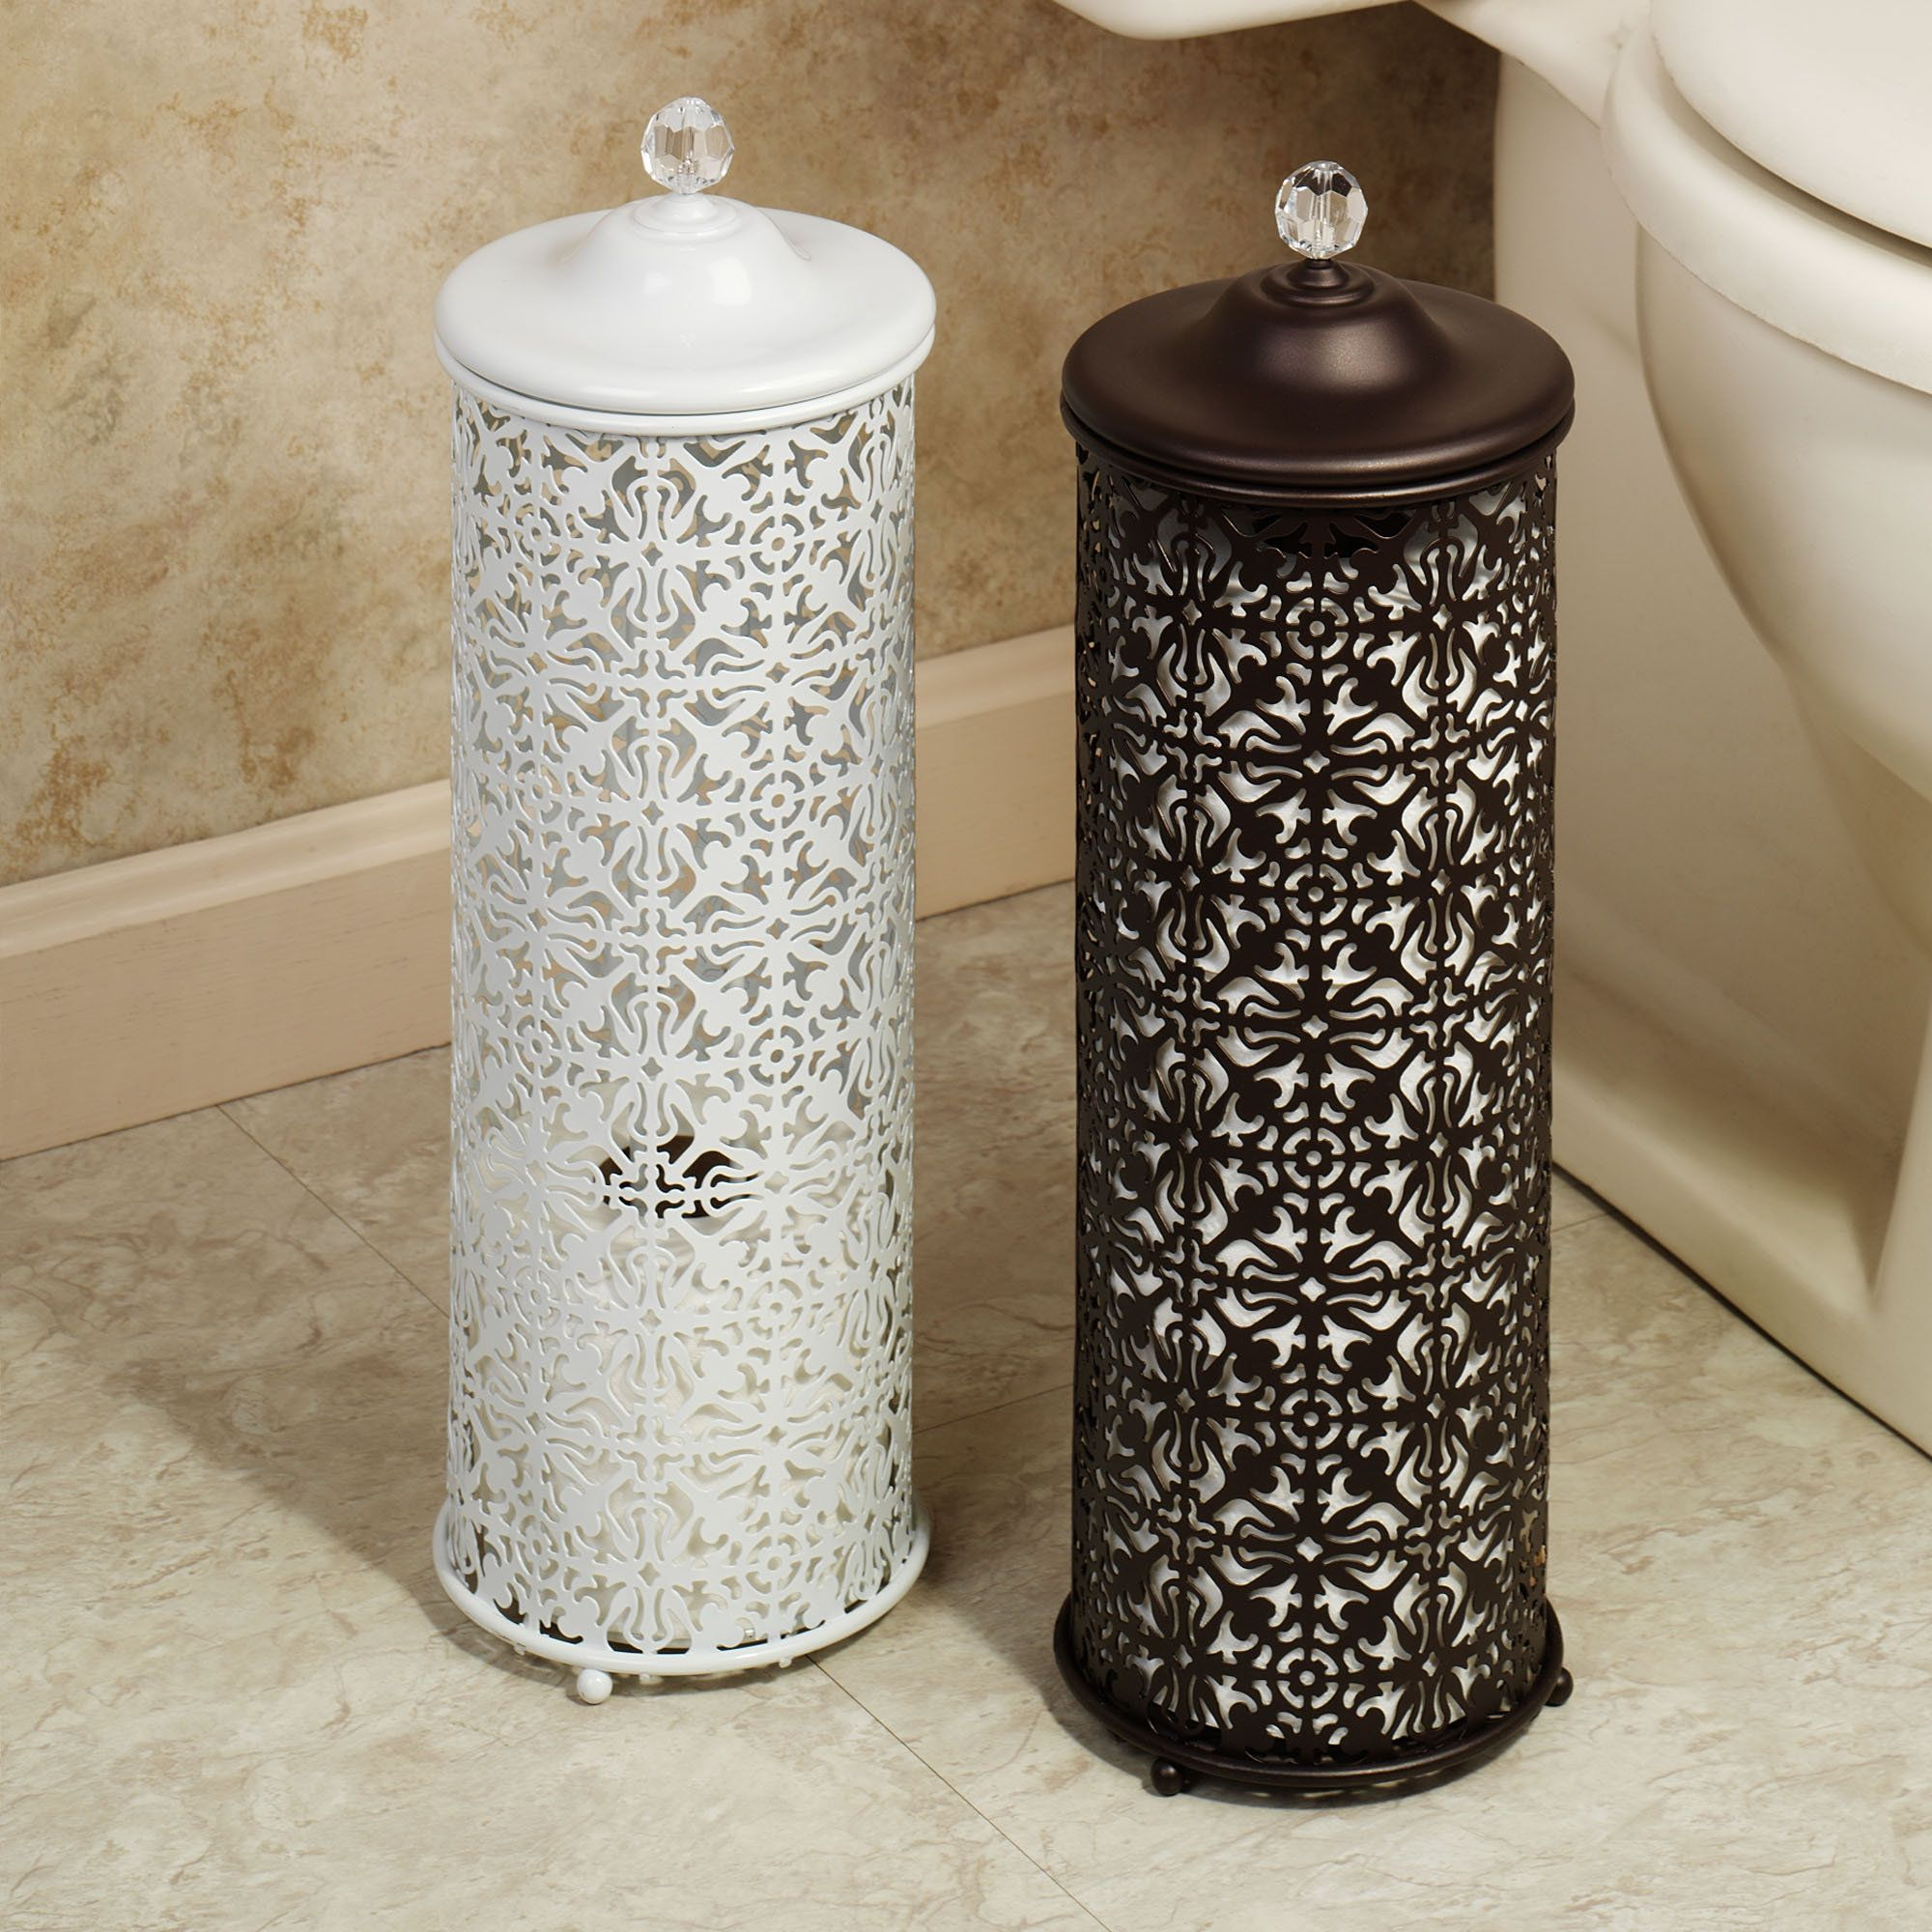 extraordinary inspiration gold toilet paper. Lace Design Metal Toilet Tissue Holder  holders and